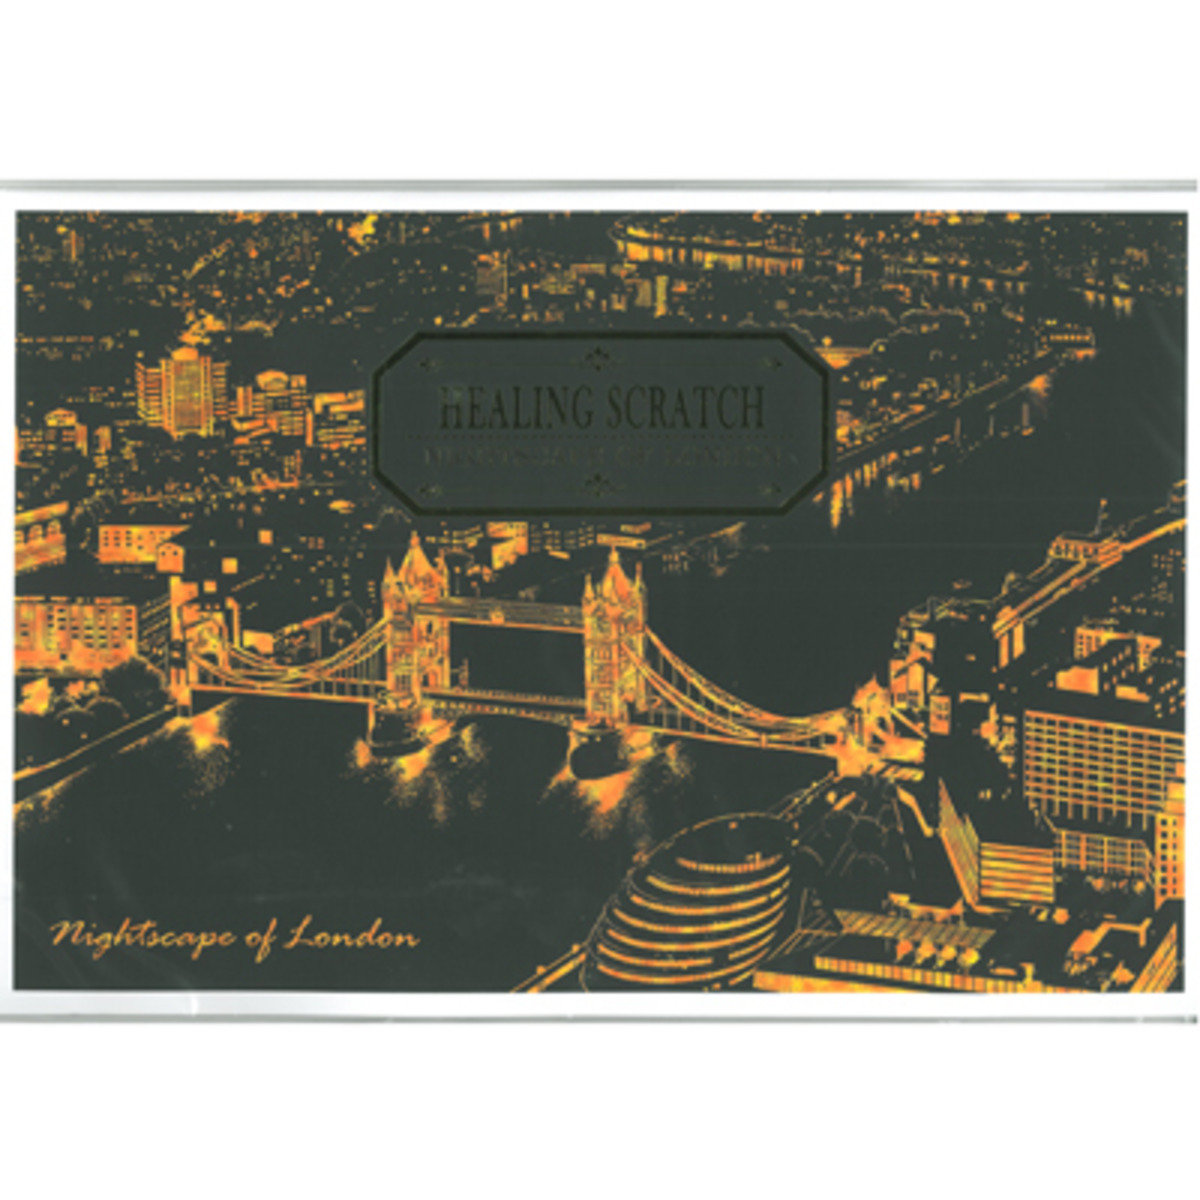 HEALING SCRATCH - NIGHTSCAPE OF LONDON 8809379160733